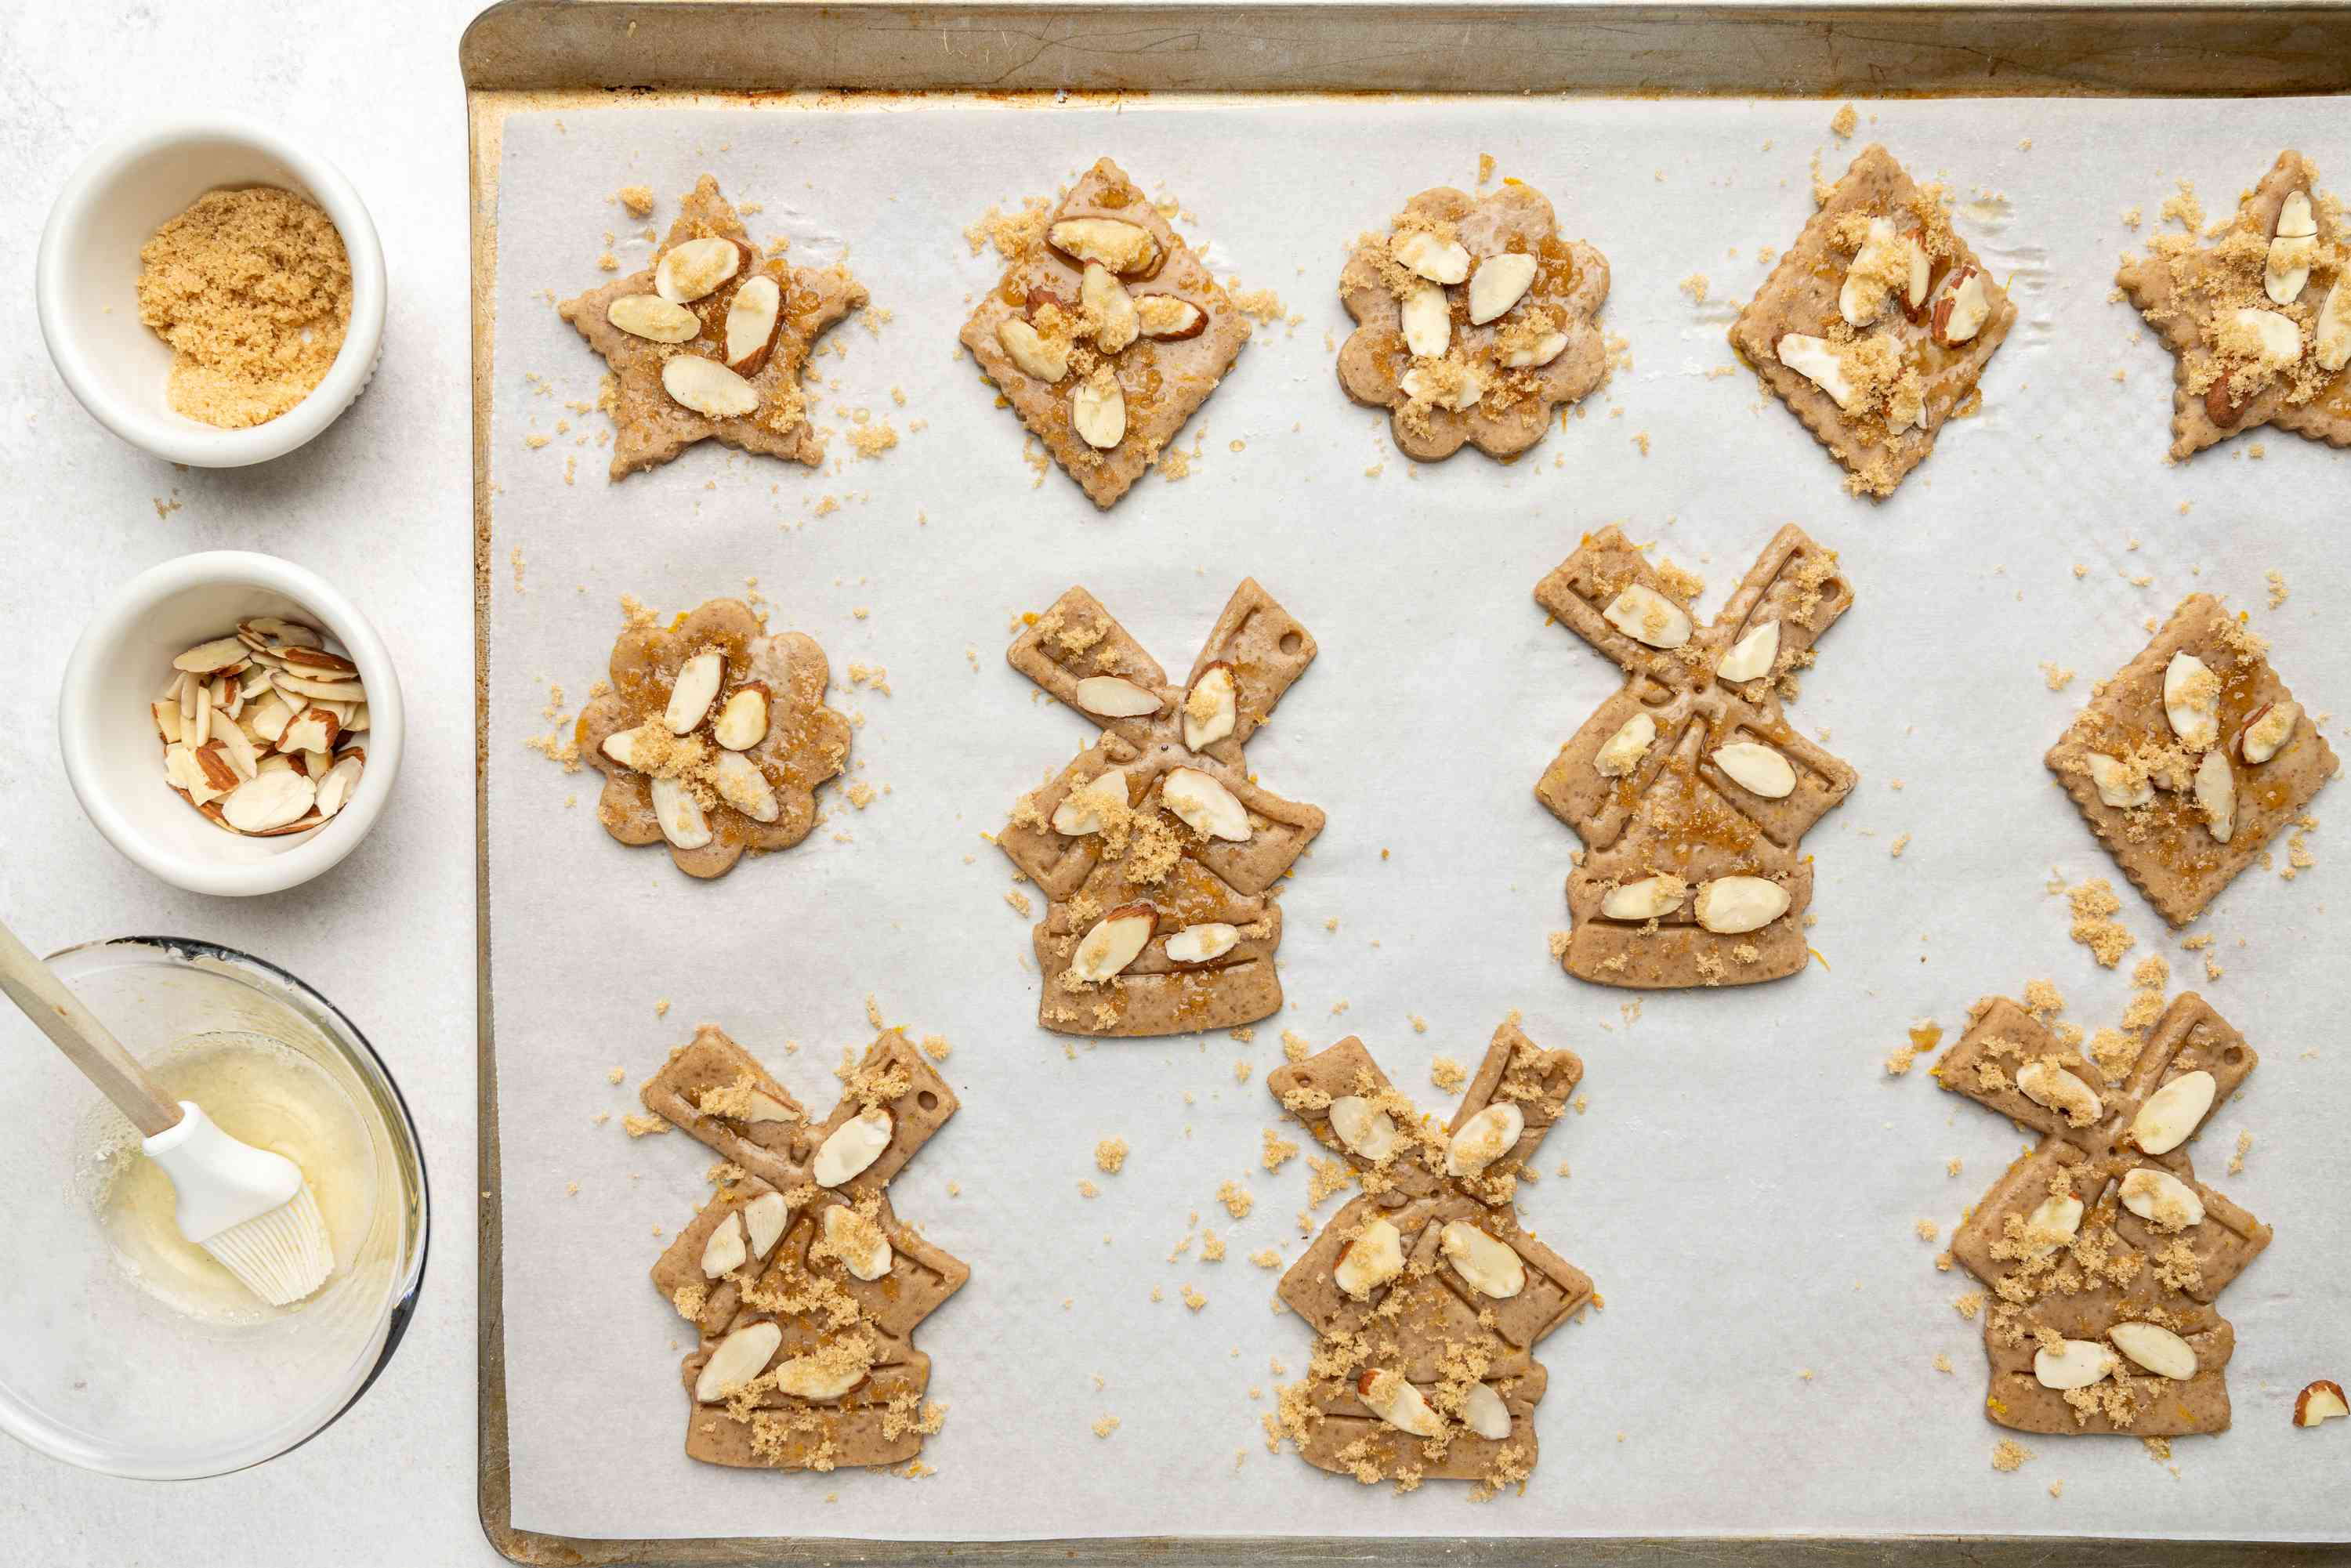 Brush the cookies with egg white and sprinkle brown sugar and flaked almonds on a baking sheet